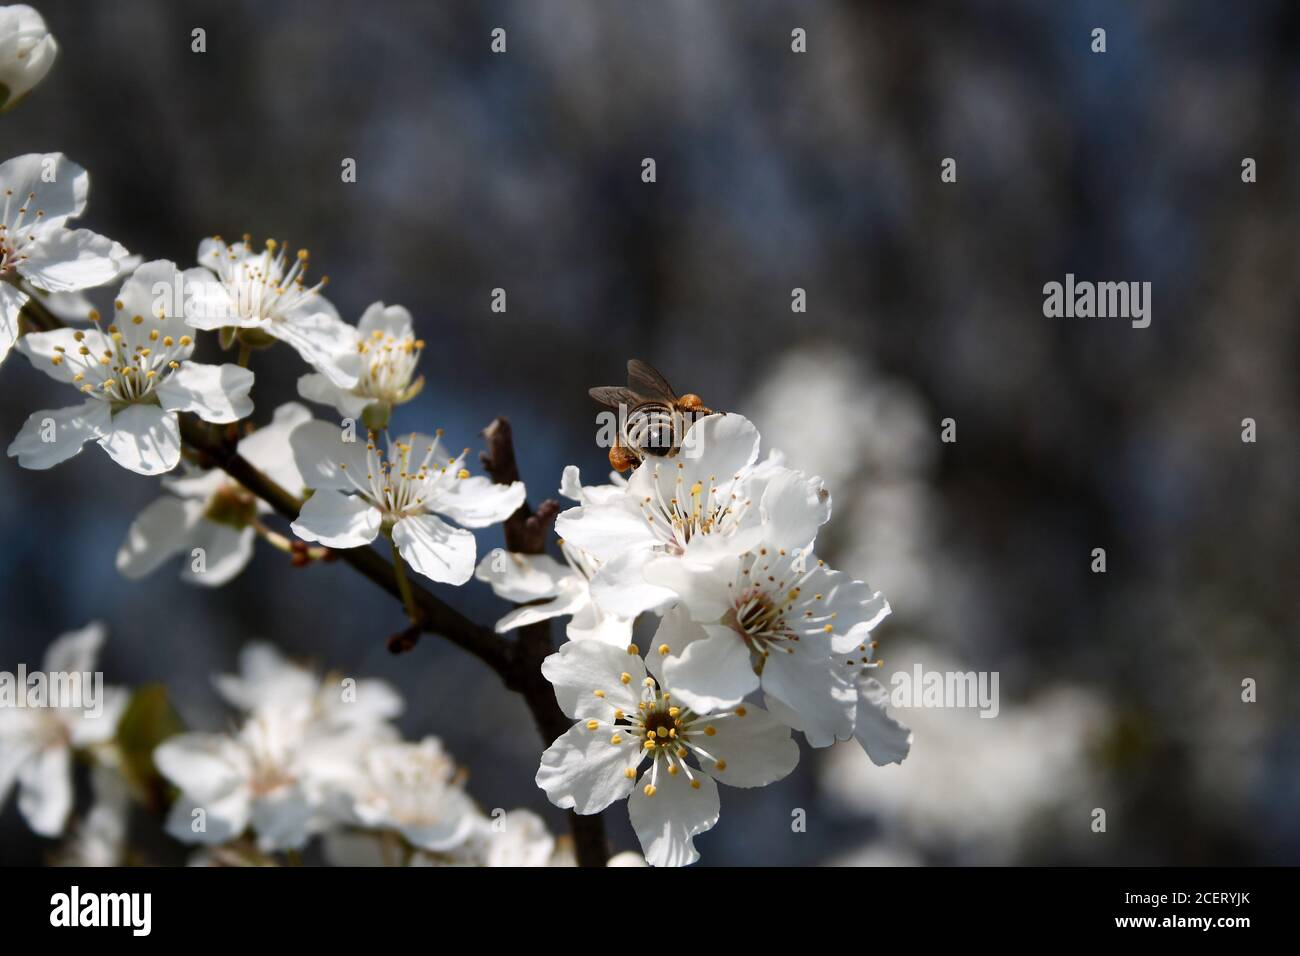 Bee collects pollen from white flowers Stock Photo